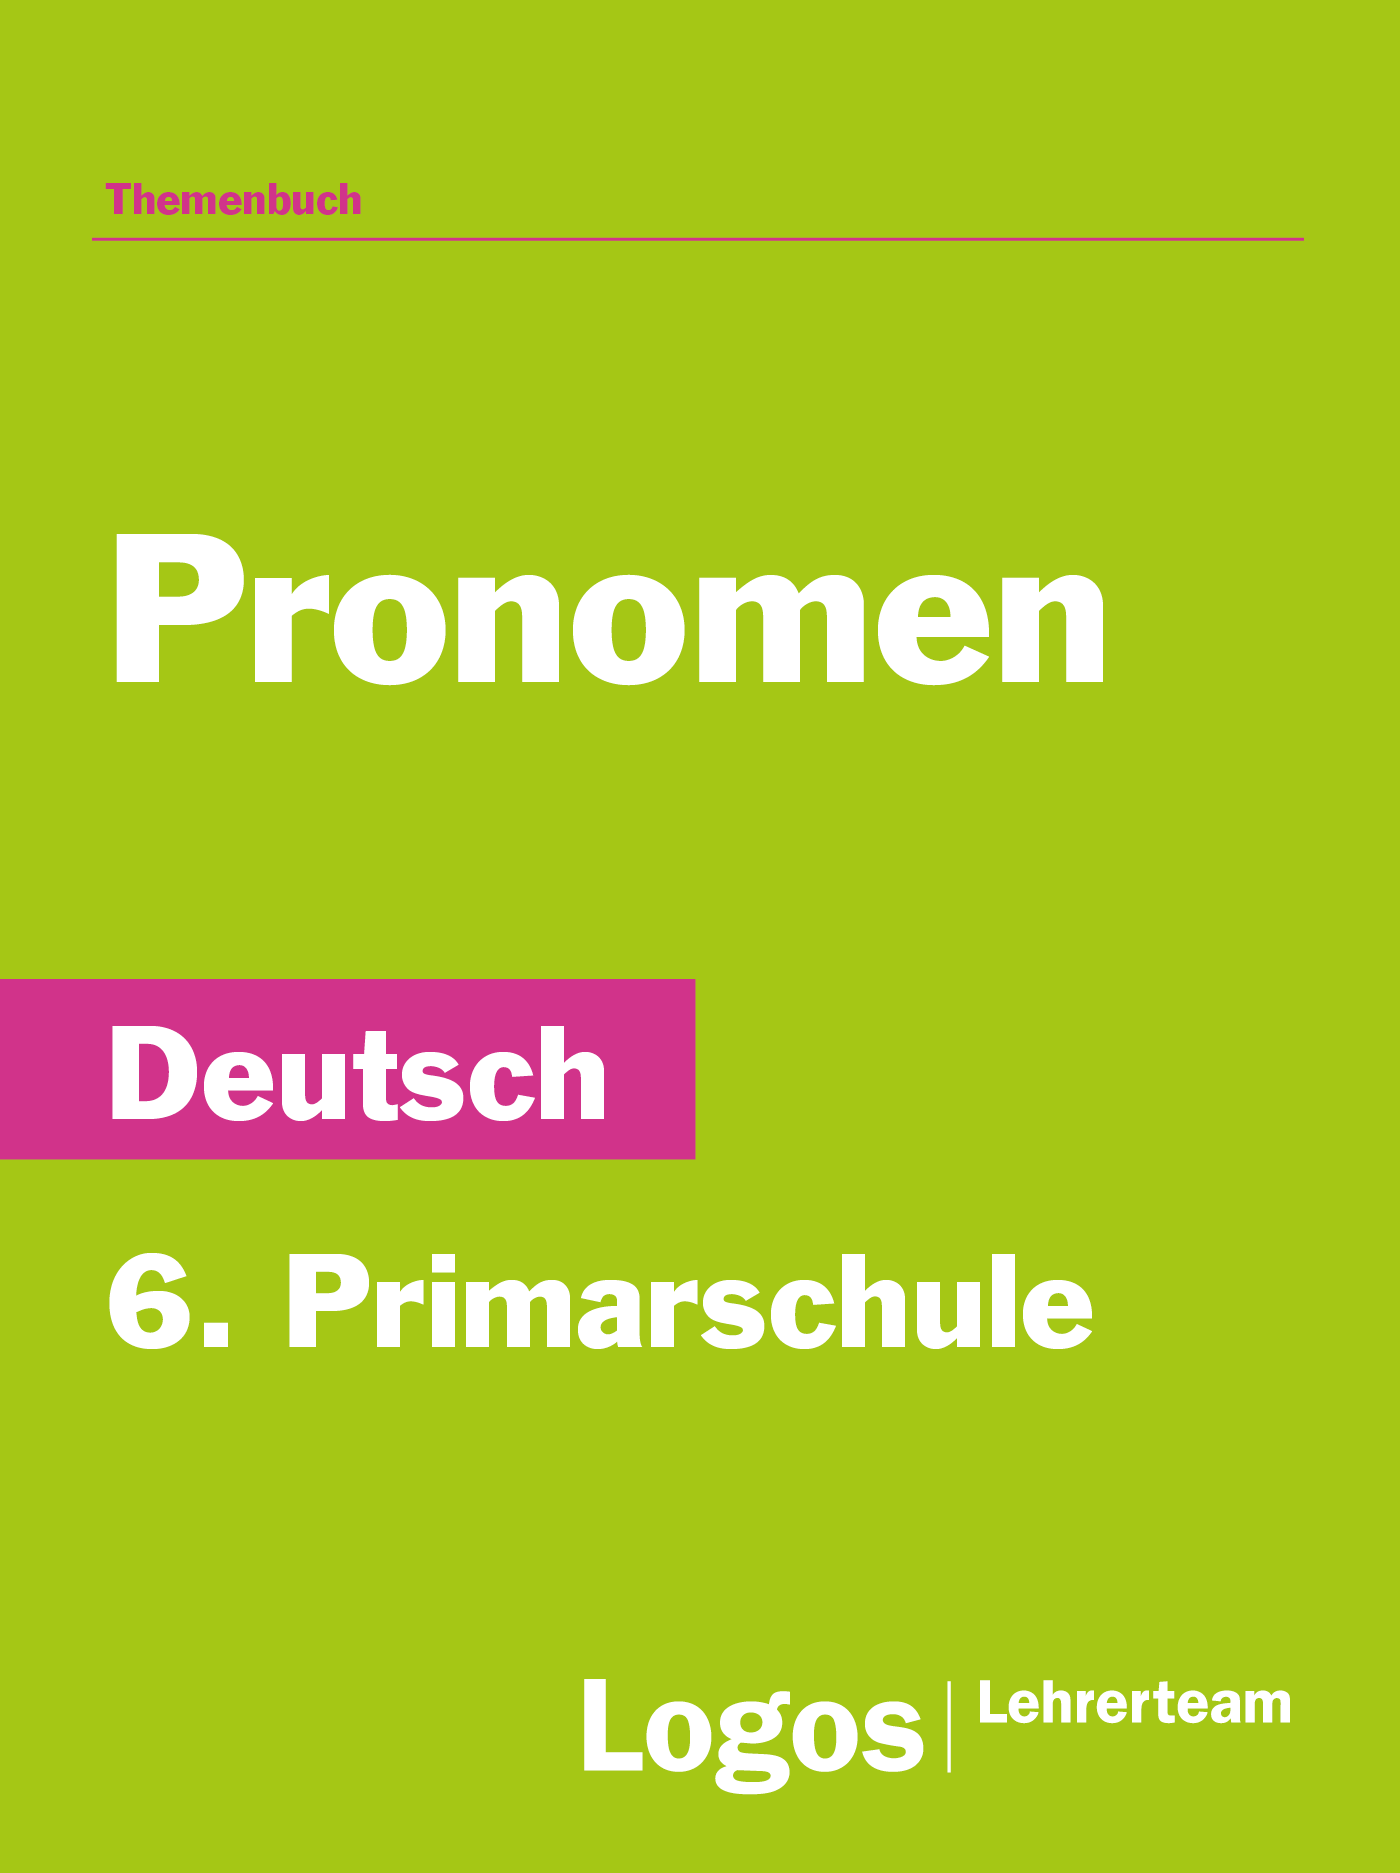 Deutsch Pronomen - 6. Primar